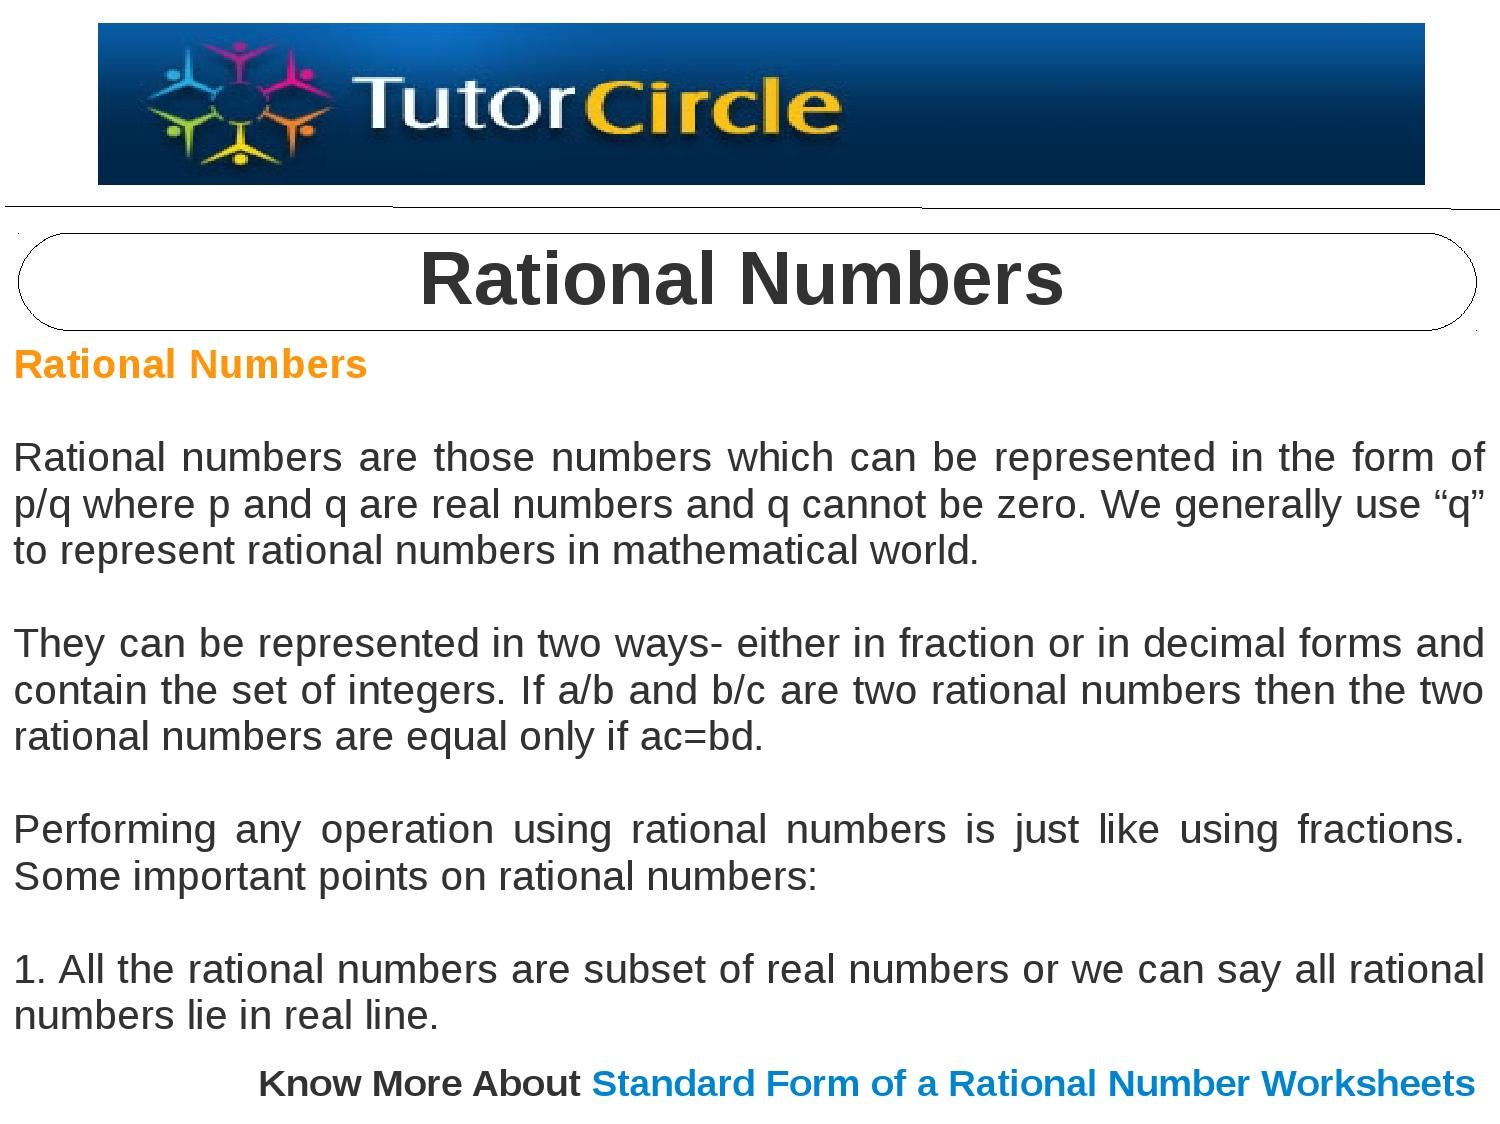 Rational numbers by tutorcircle team issuu aequipe Gallery